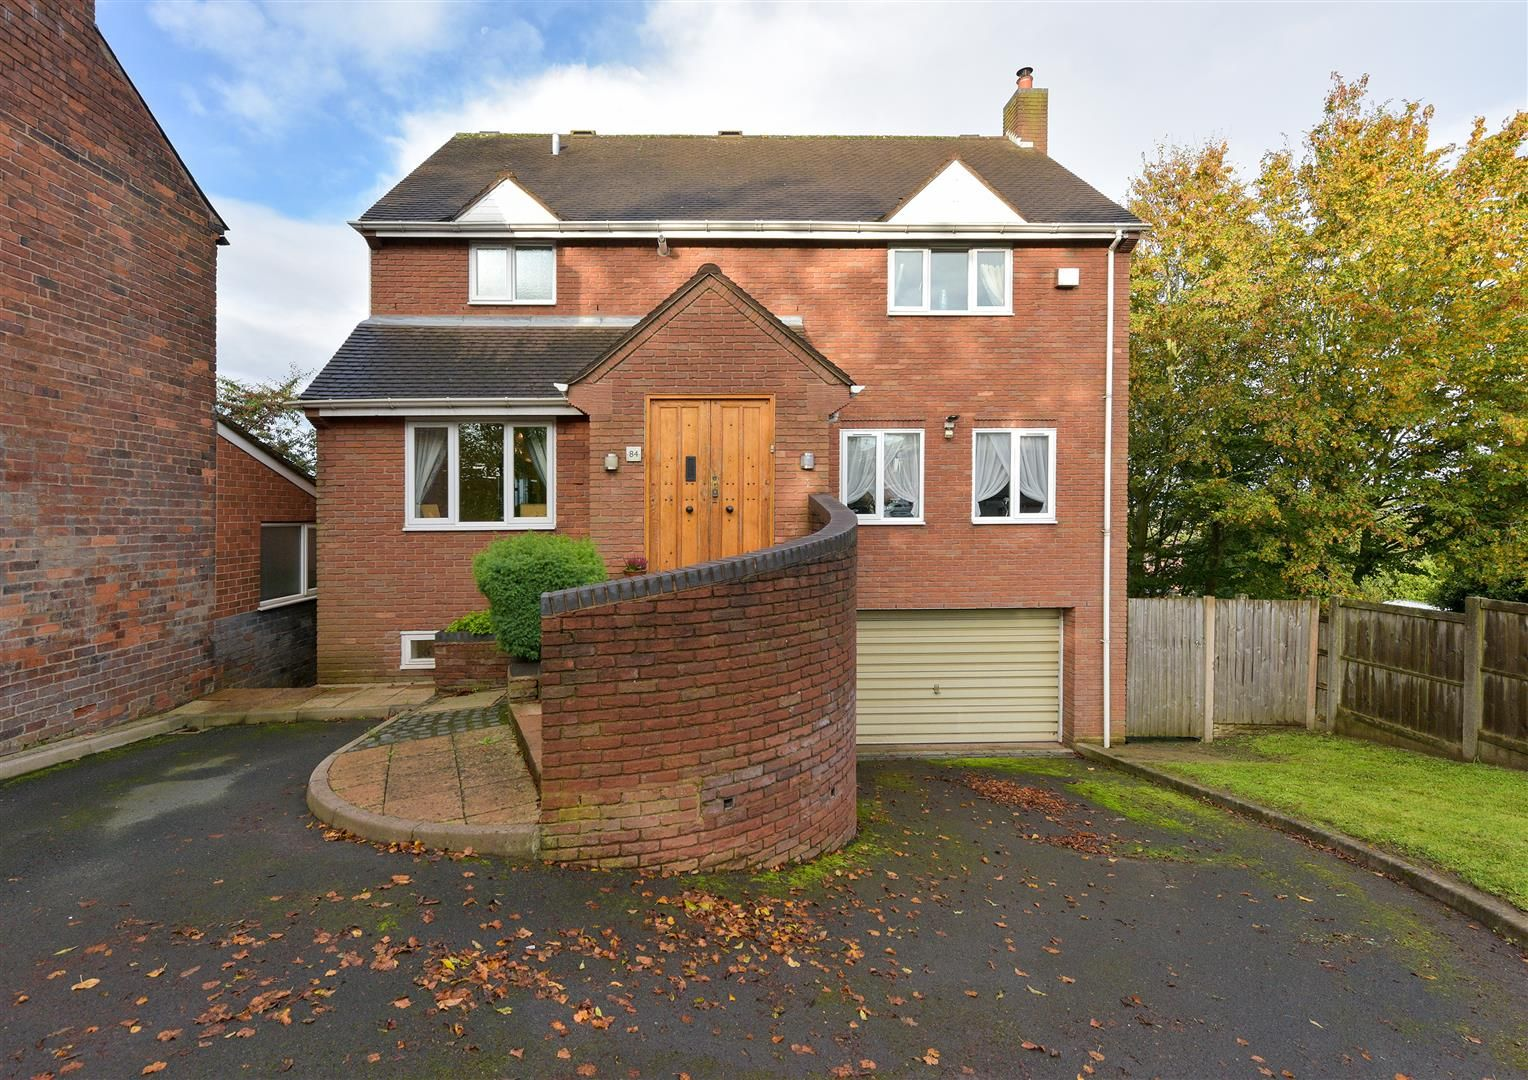 3 bed detached for sale  - Property Image 26